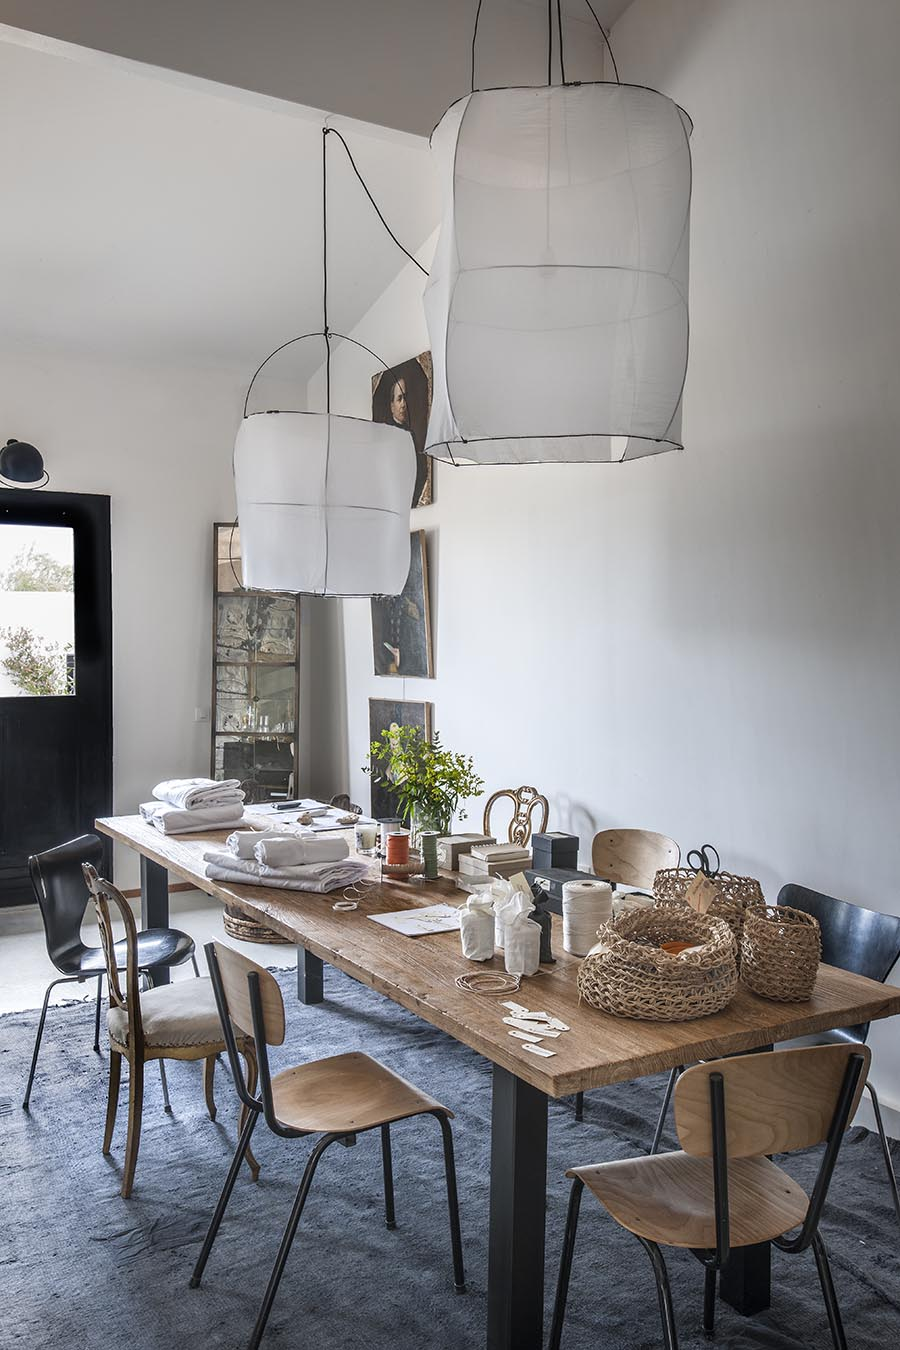 la-table-selon-secret-maison